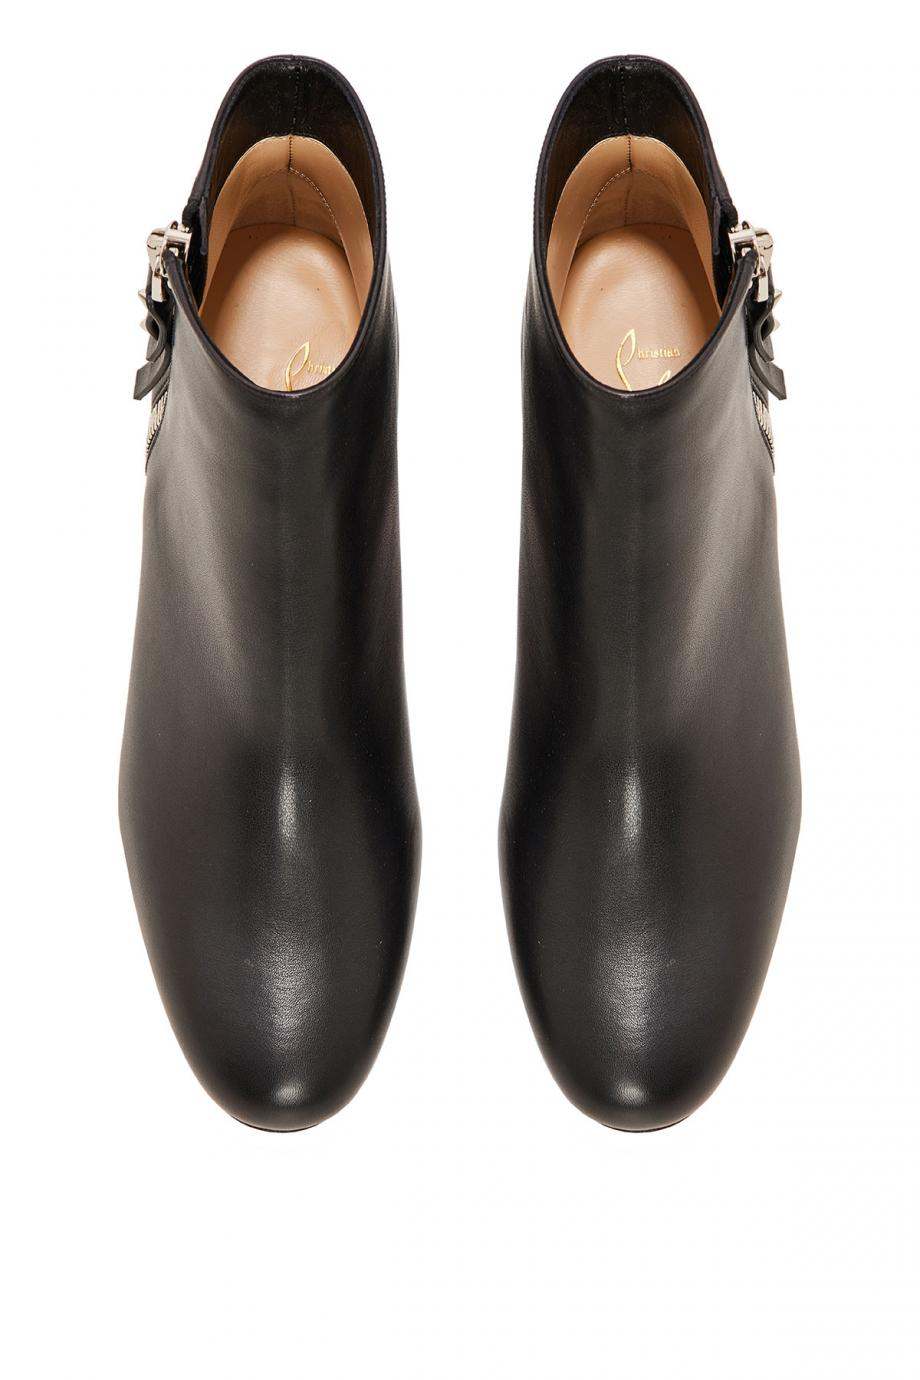 Ziptotal leather boots